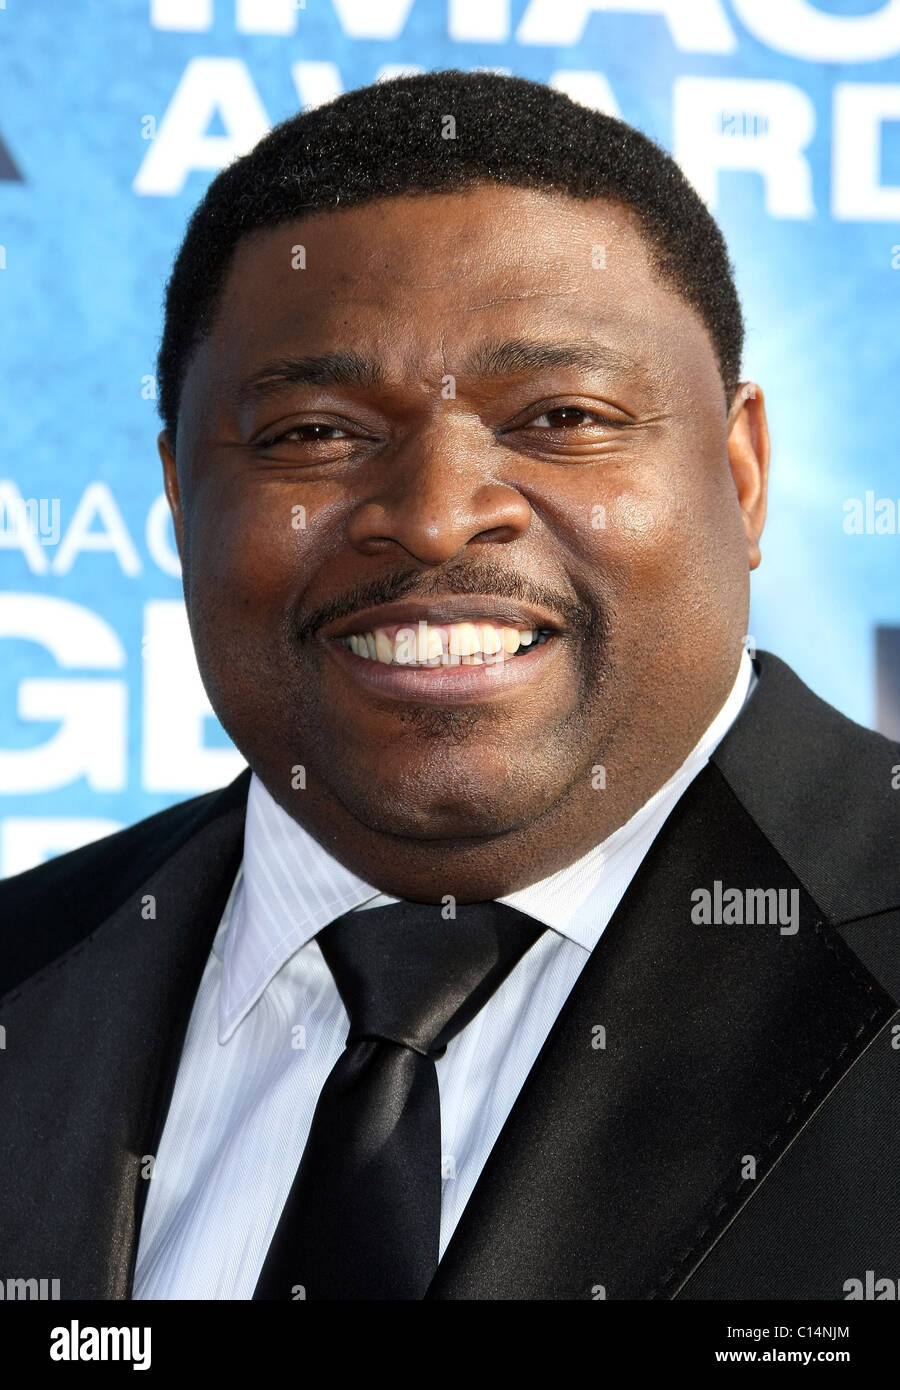 LAVAN DAVIS 42ND NAACP IMAGE AWARDS ARRIVALS DOWNTOWN LOS ANGELES CALIFORNIA USA 04 March 2011 - Stock Image